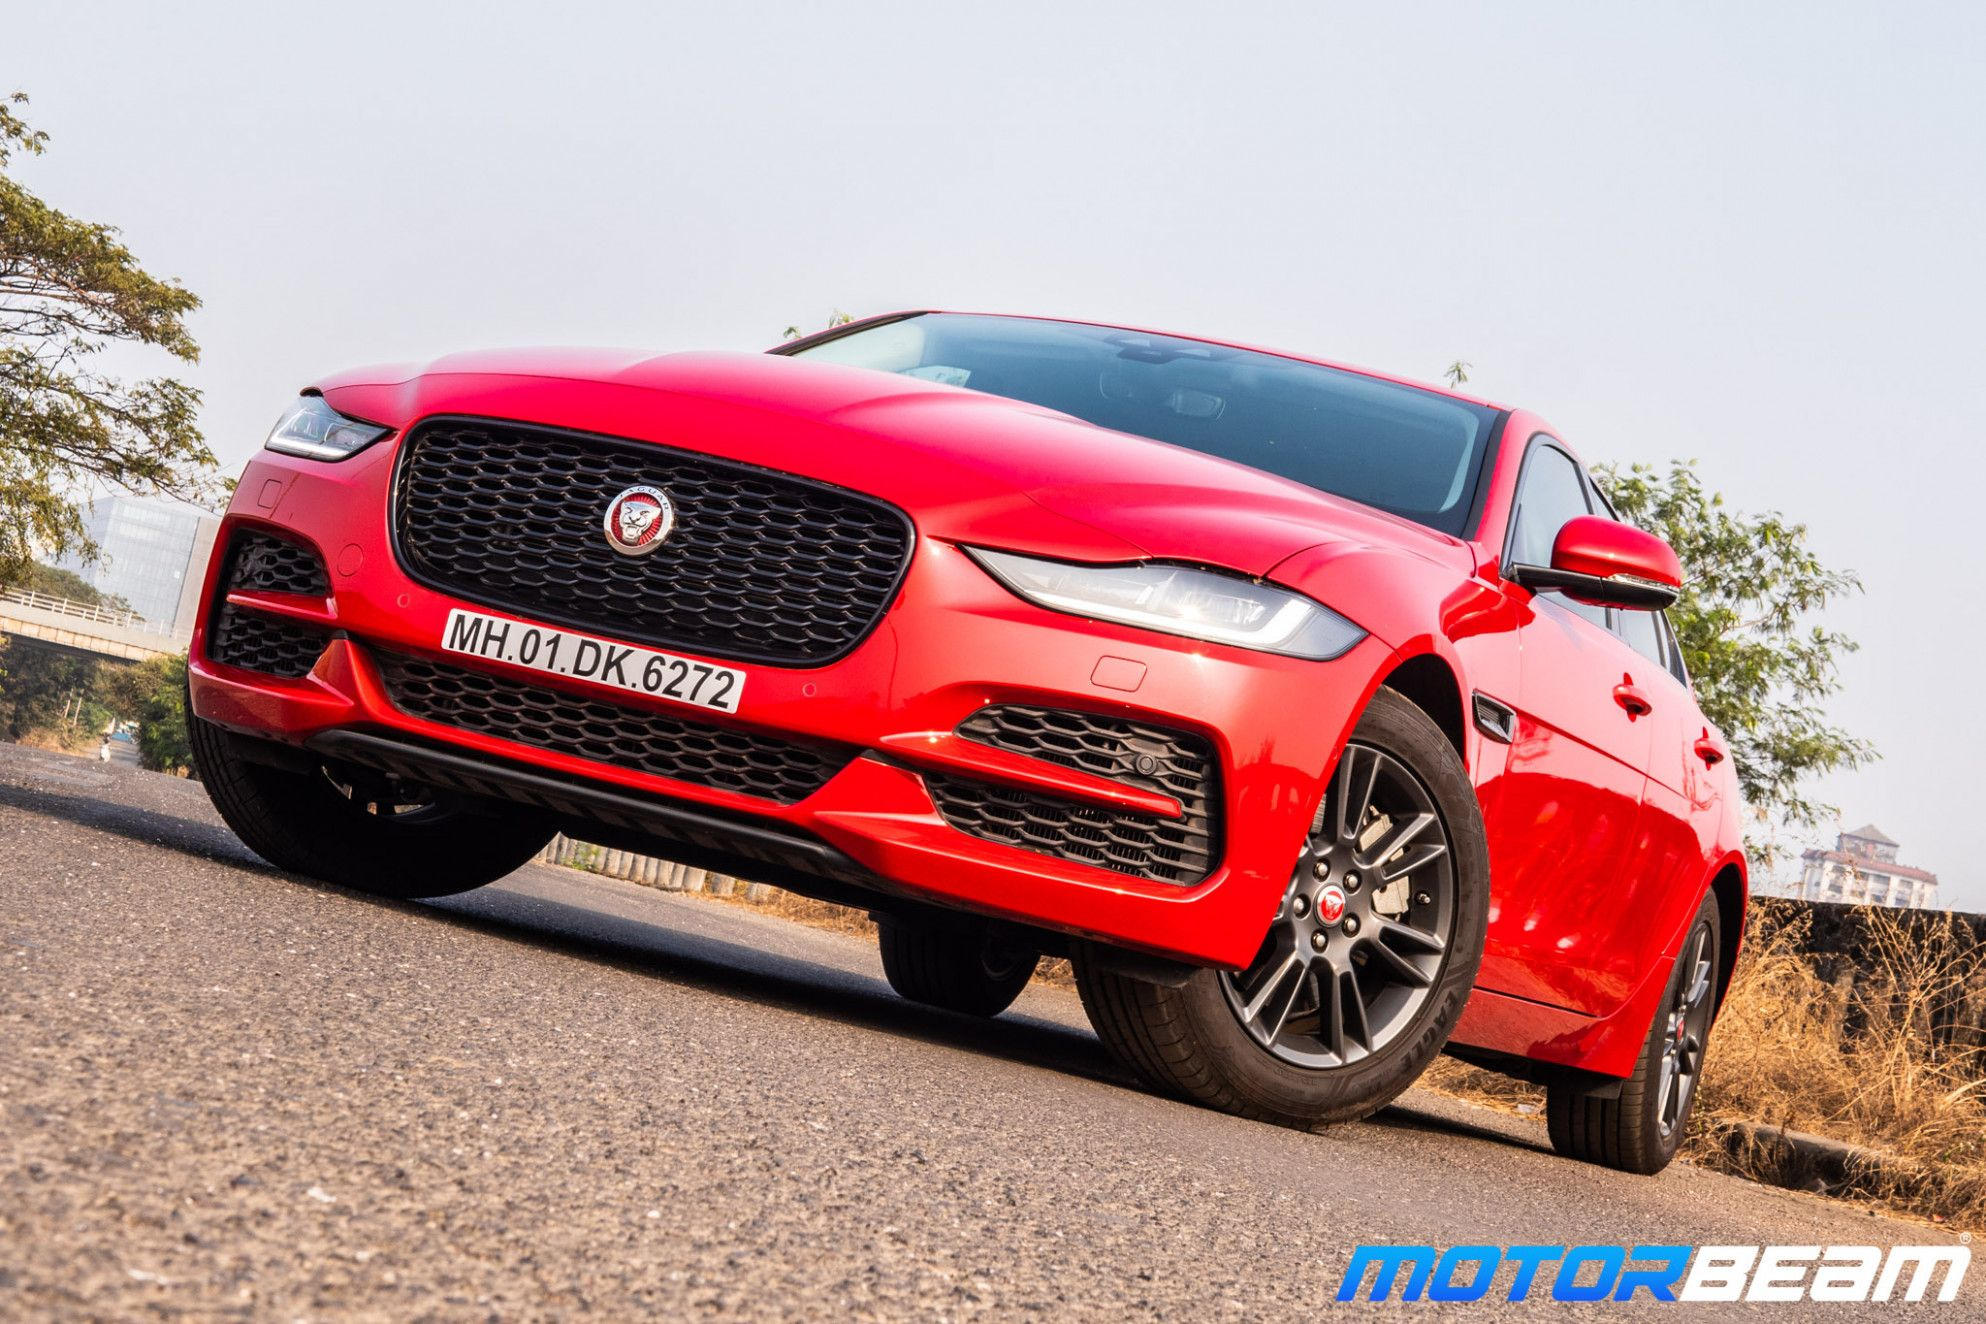 2020 Jaguar Xe Review Research New It Has A Added Advancing Attending Than Aftermost Year With A New Adenoids And Tail The 2020 Jaguar Xe Shows There Absolute Di 2020